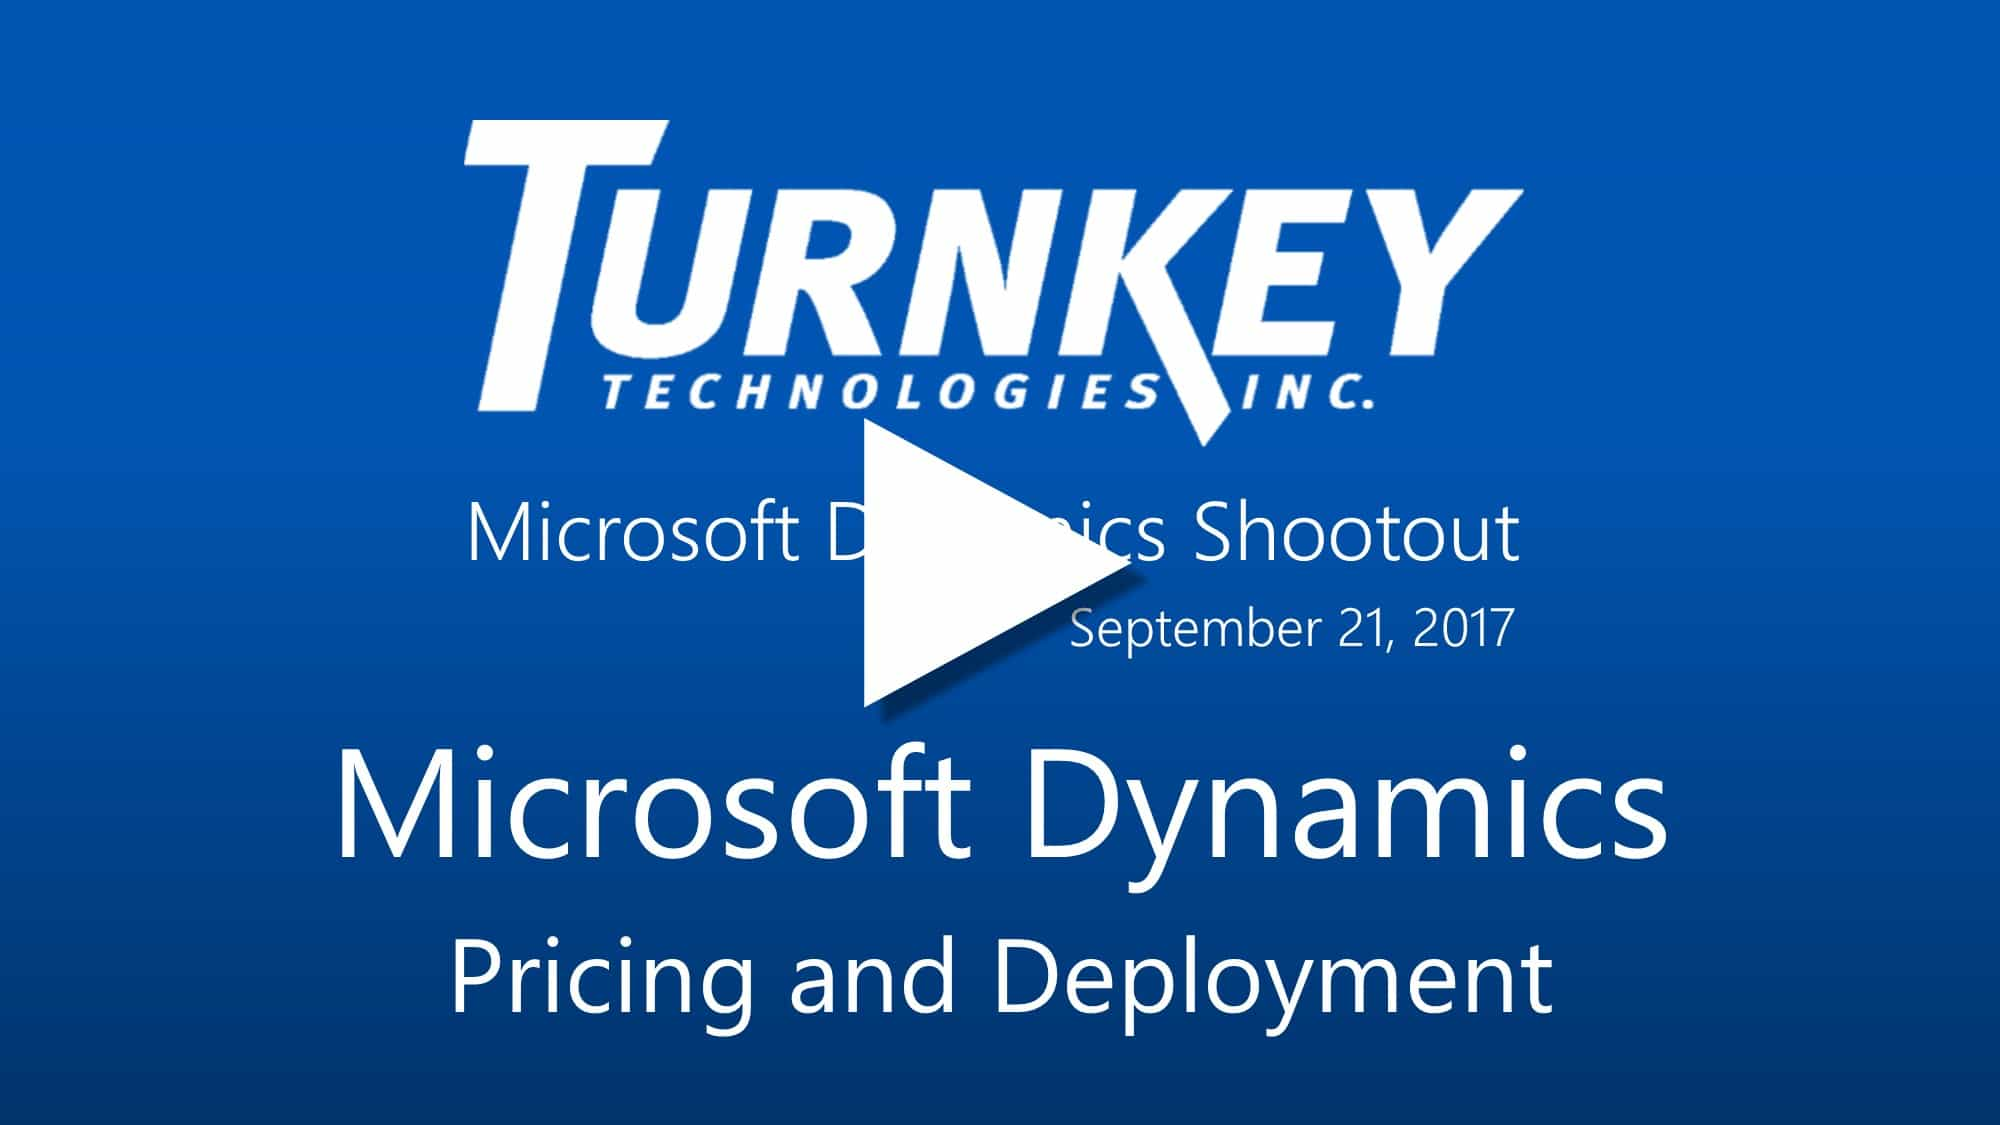 Compare Microsoft Dynamics Business Solutions - Pricing and Deployment Options